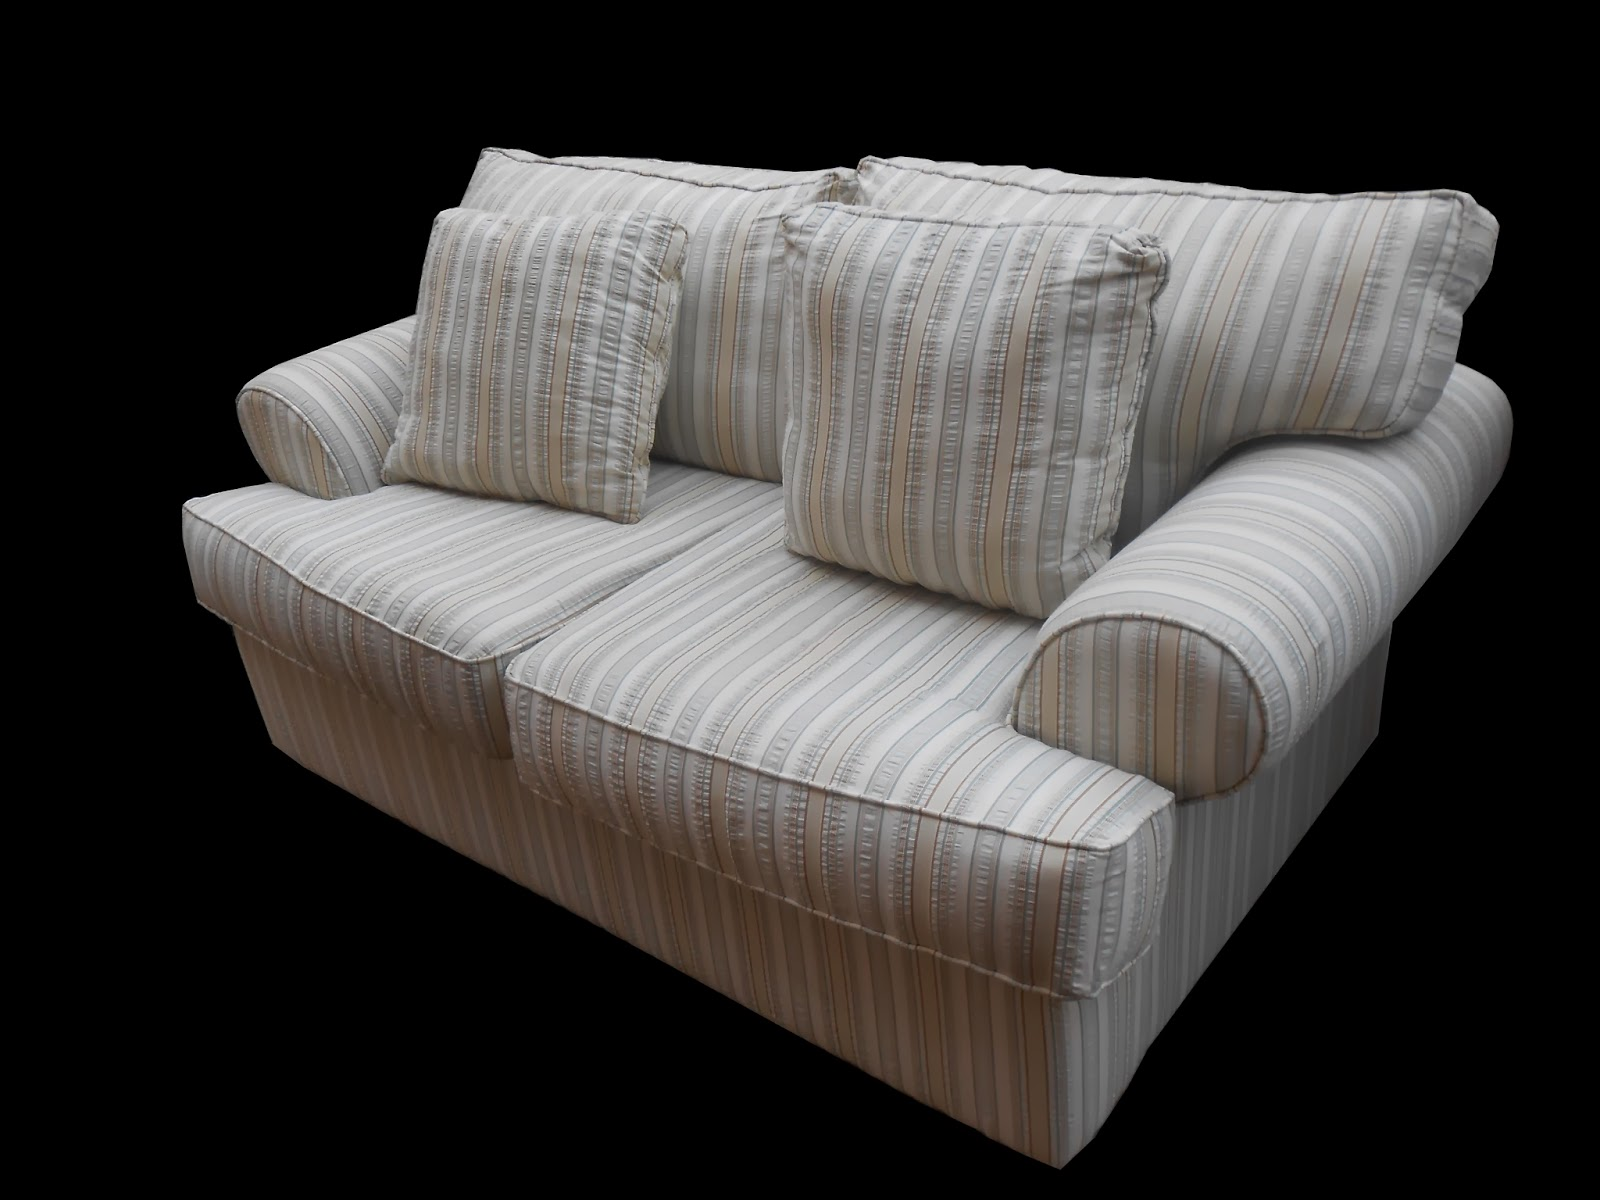 striped sofa sectional sofas ct uhuru furniture and collectibles pastel earthtone